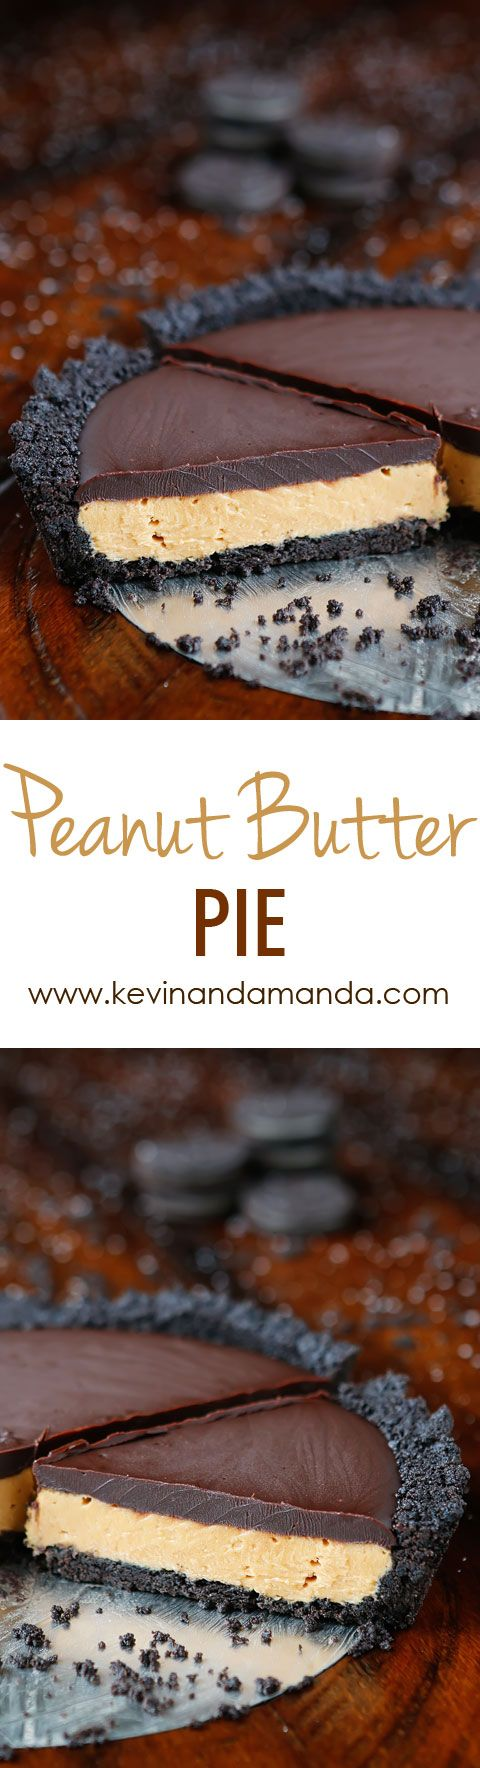 The BEST No-Bake Peanut Butter Pie recipe with NO cream cheese and NO cool whip!!! #ad #sk